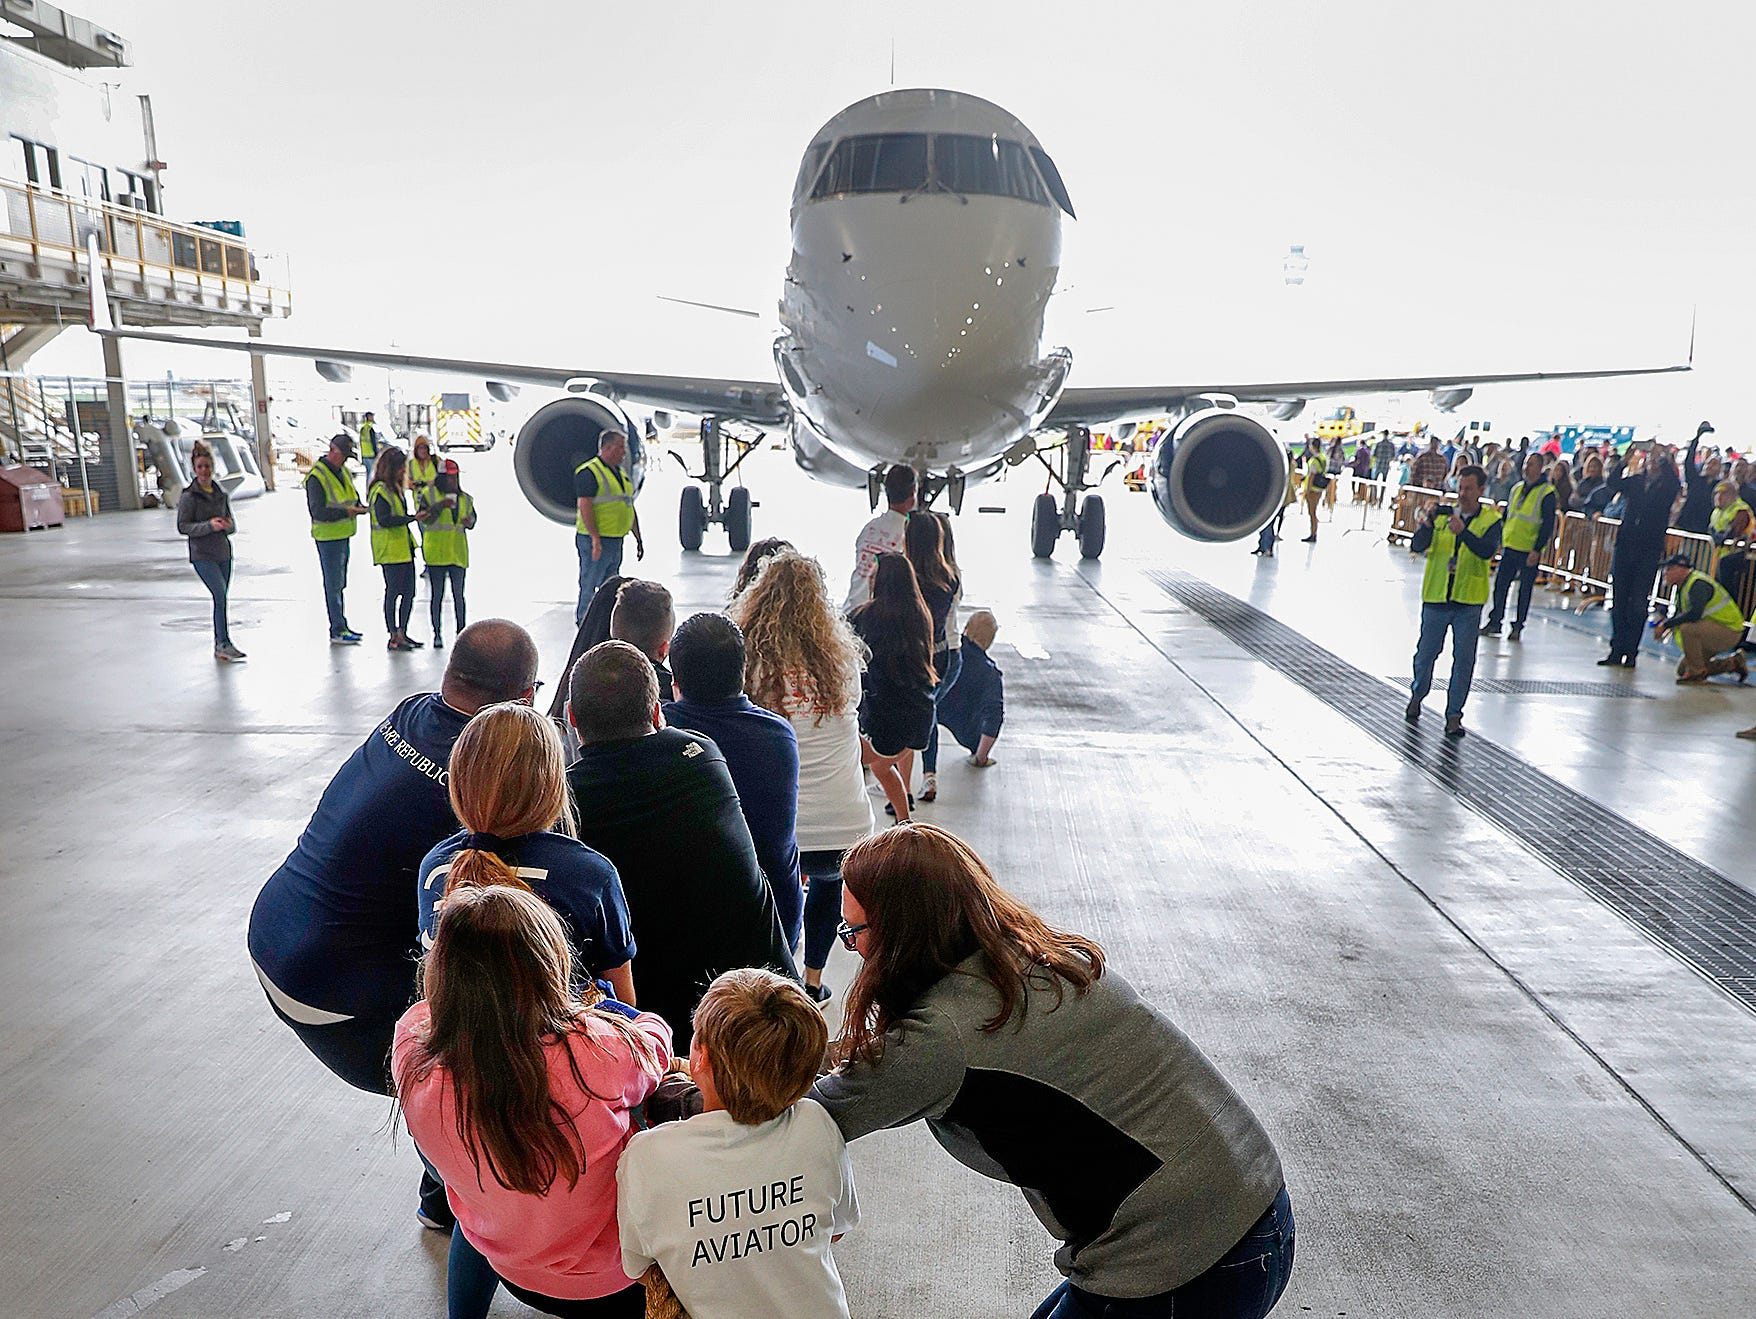 The Puddle Jumpers pulls an Embraer 170/175 aircraft 15 feet during the 9th Annual Republic Airways Plane Pull at the Republic Airways Hanger at the Indianapolis International Airport on Saturday, April 13, 2019.